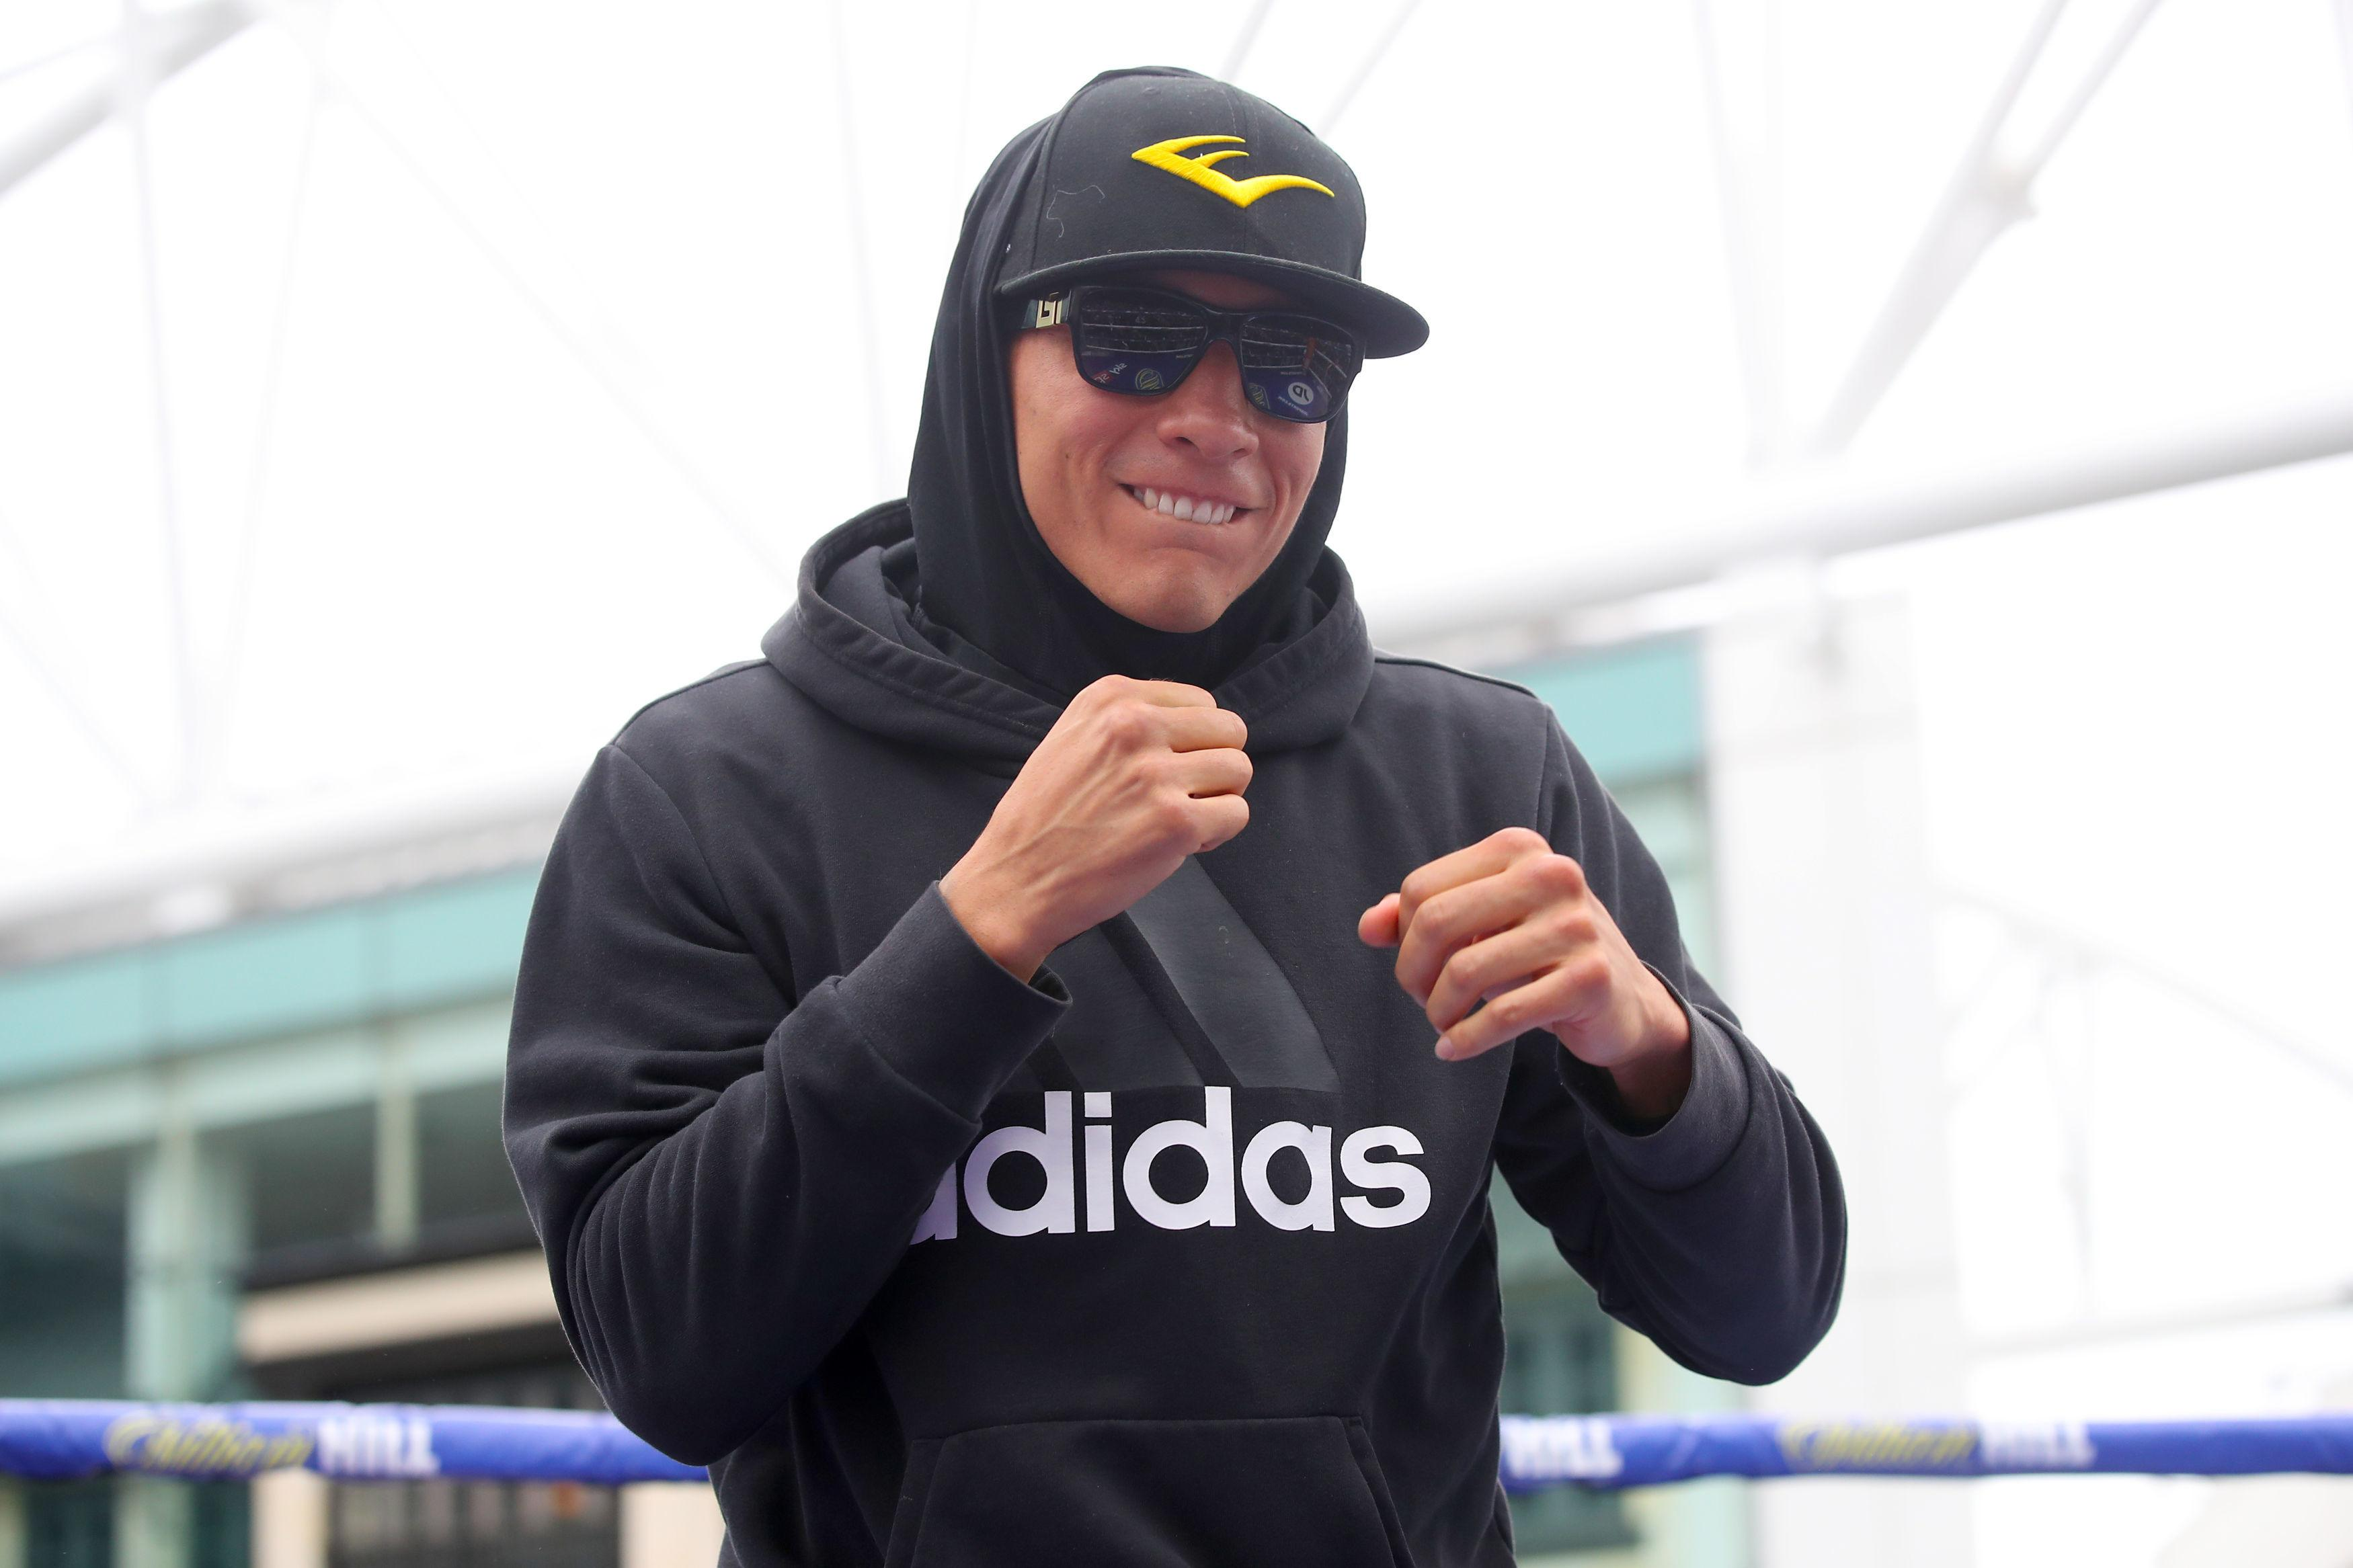 Vargas is confident of heading back over the Atlantic with a win